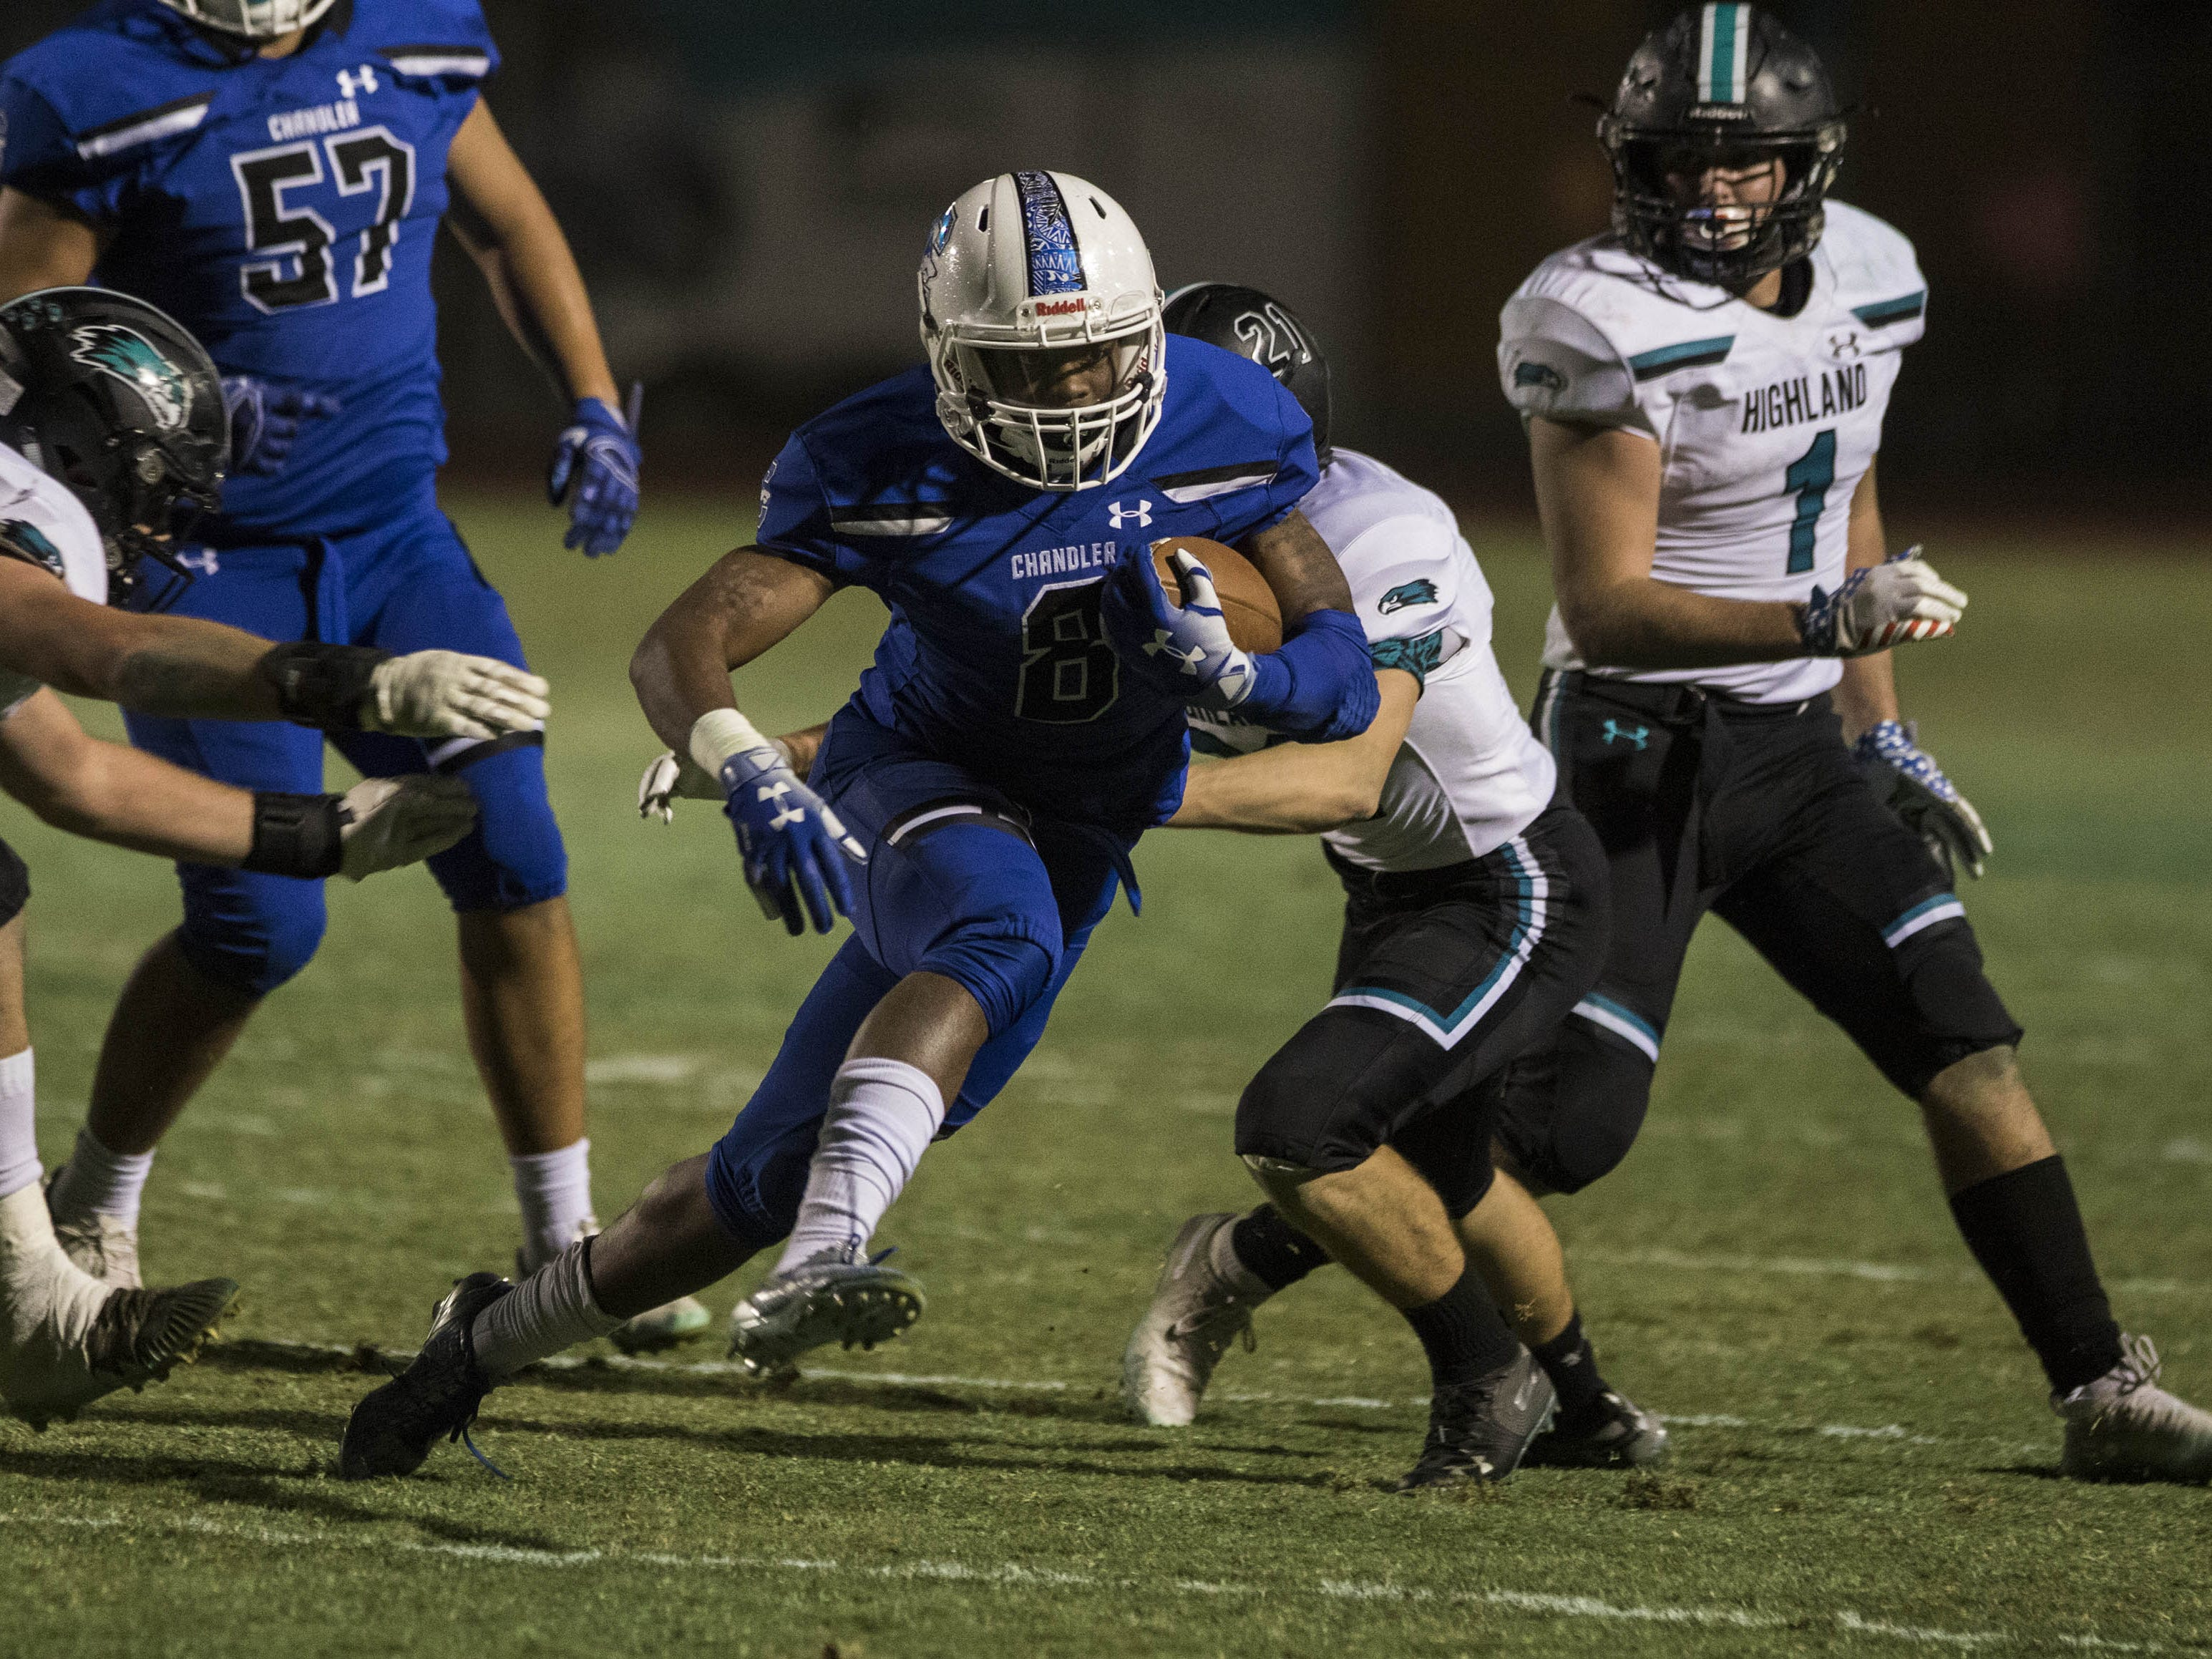 Chandler's Jaheim Brown-Taylor finds a hole against Highland during their game in Chandler Friday, Nov.16, 2018. #azhsfb